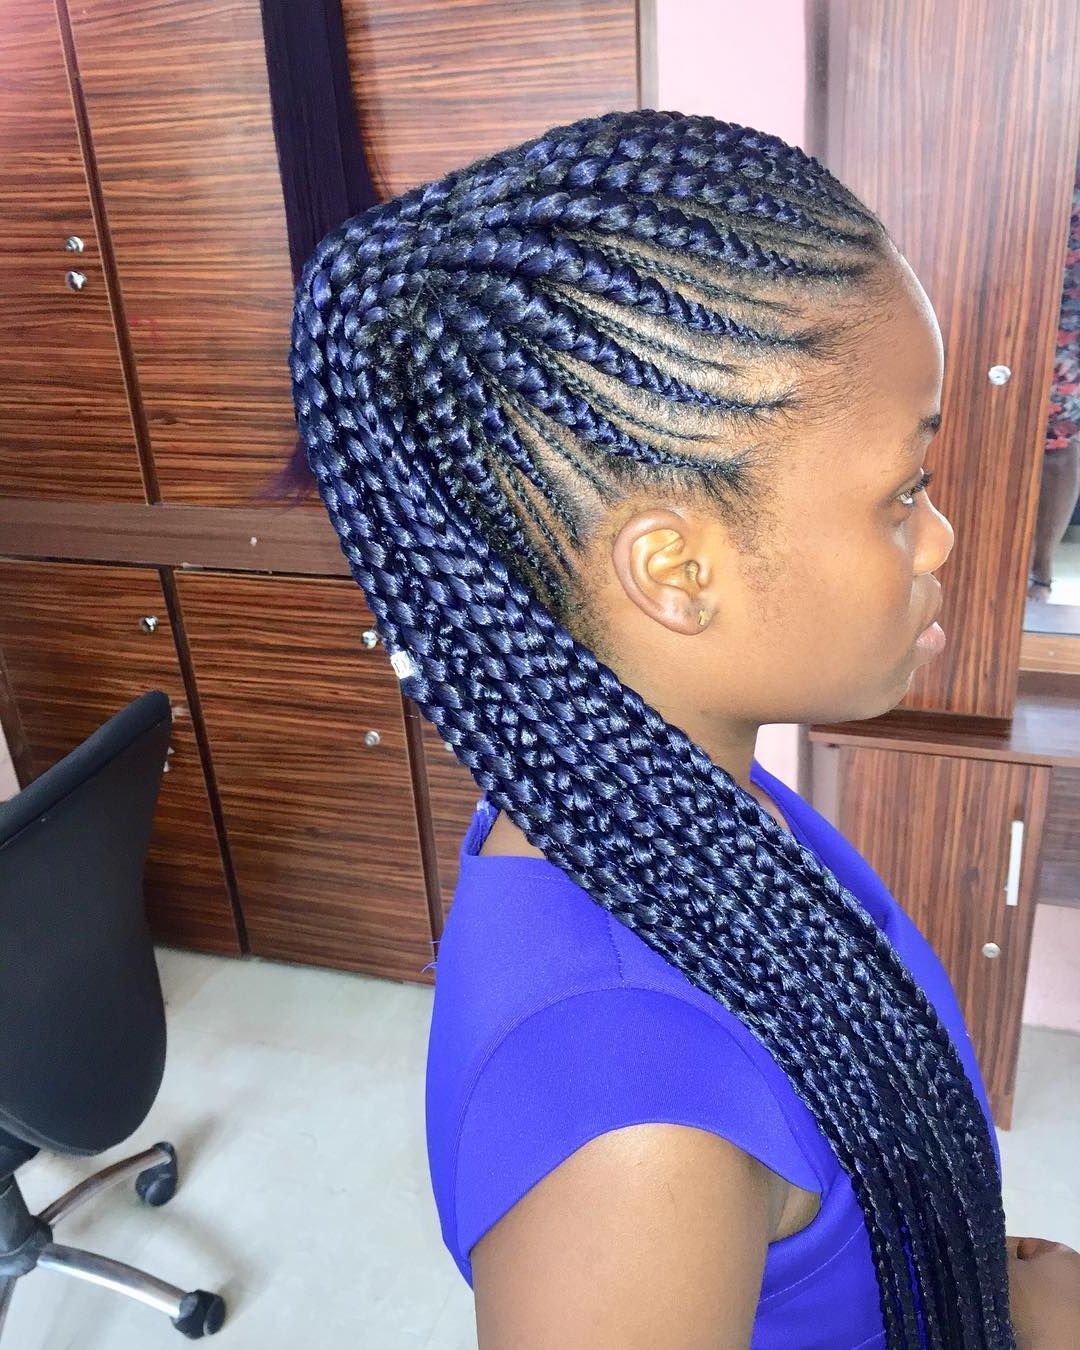 Most Recent Stylish Braids Ponytail Hairstyles With Regard To 30 Cute Braided Ponytail Hairstyles For Black Hair That Will Make (View 5 of 20)